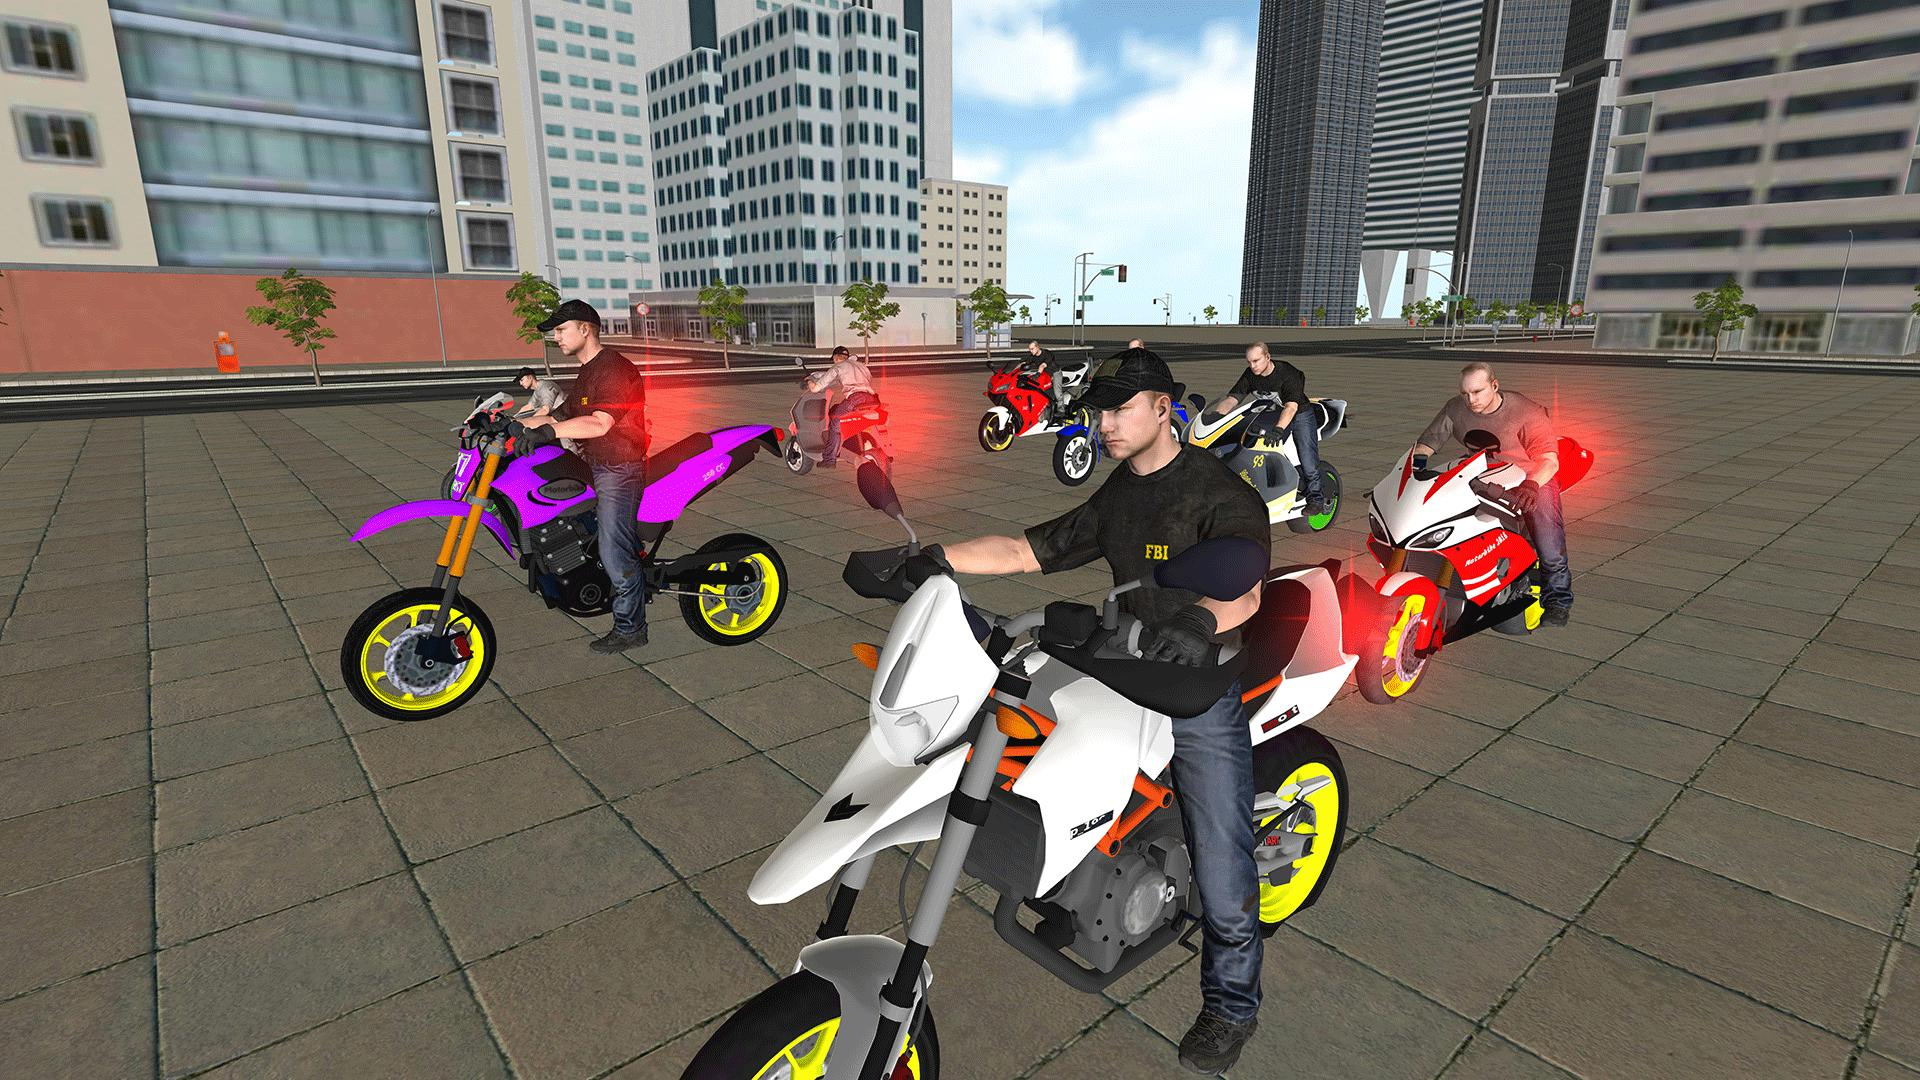 Bike Police Pursuit: Cop Chase & Escape for Android - APK